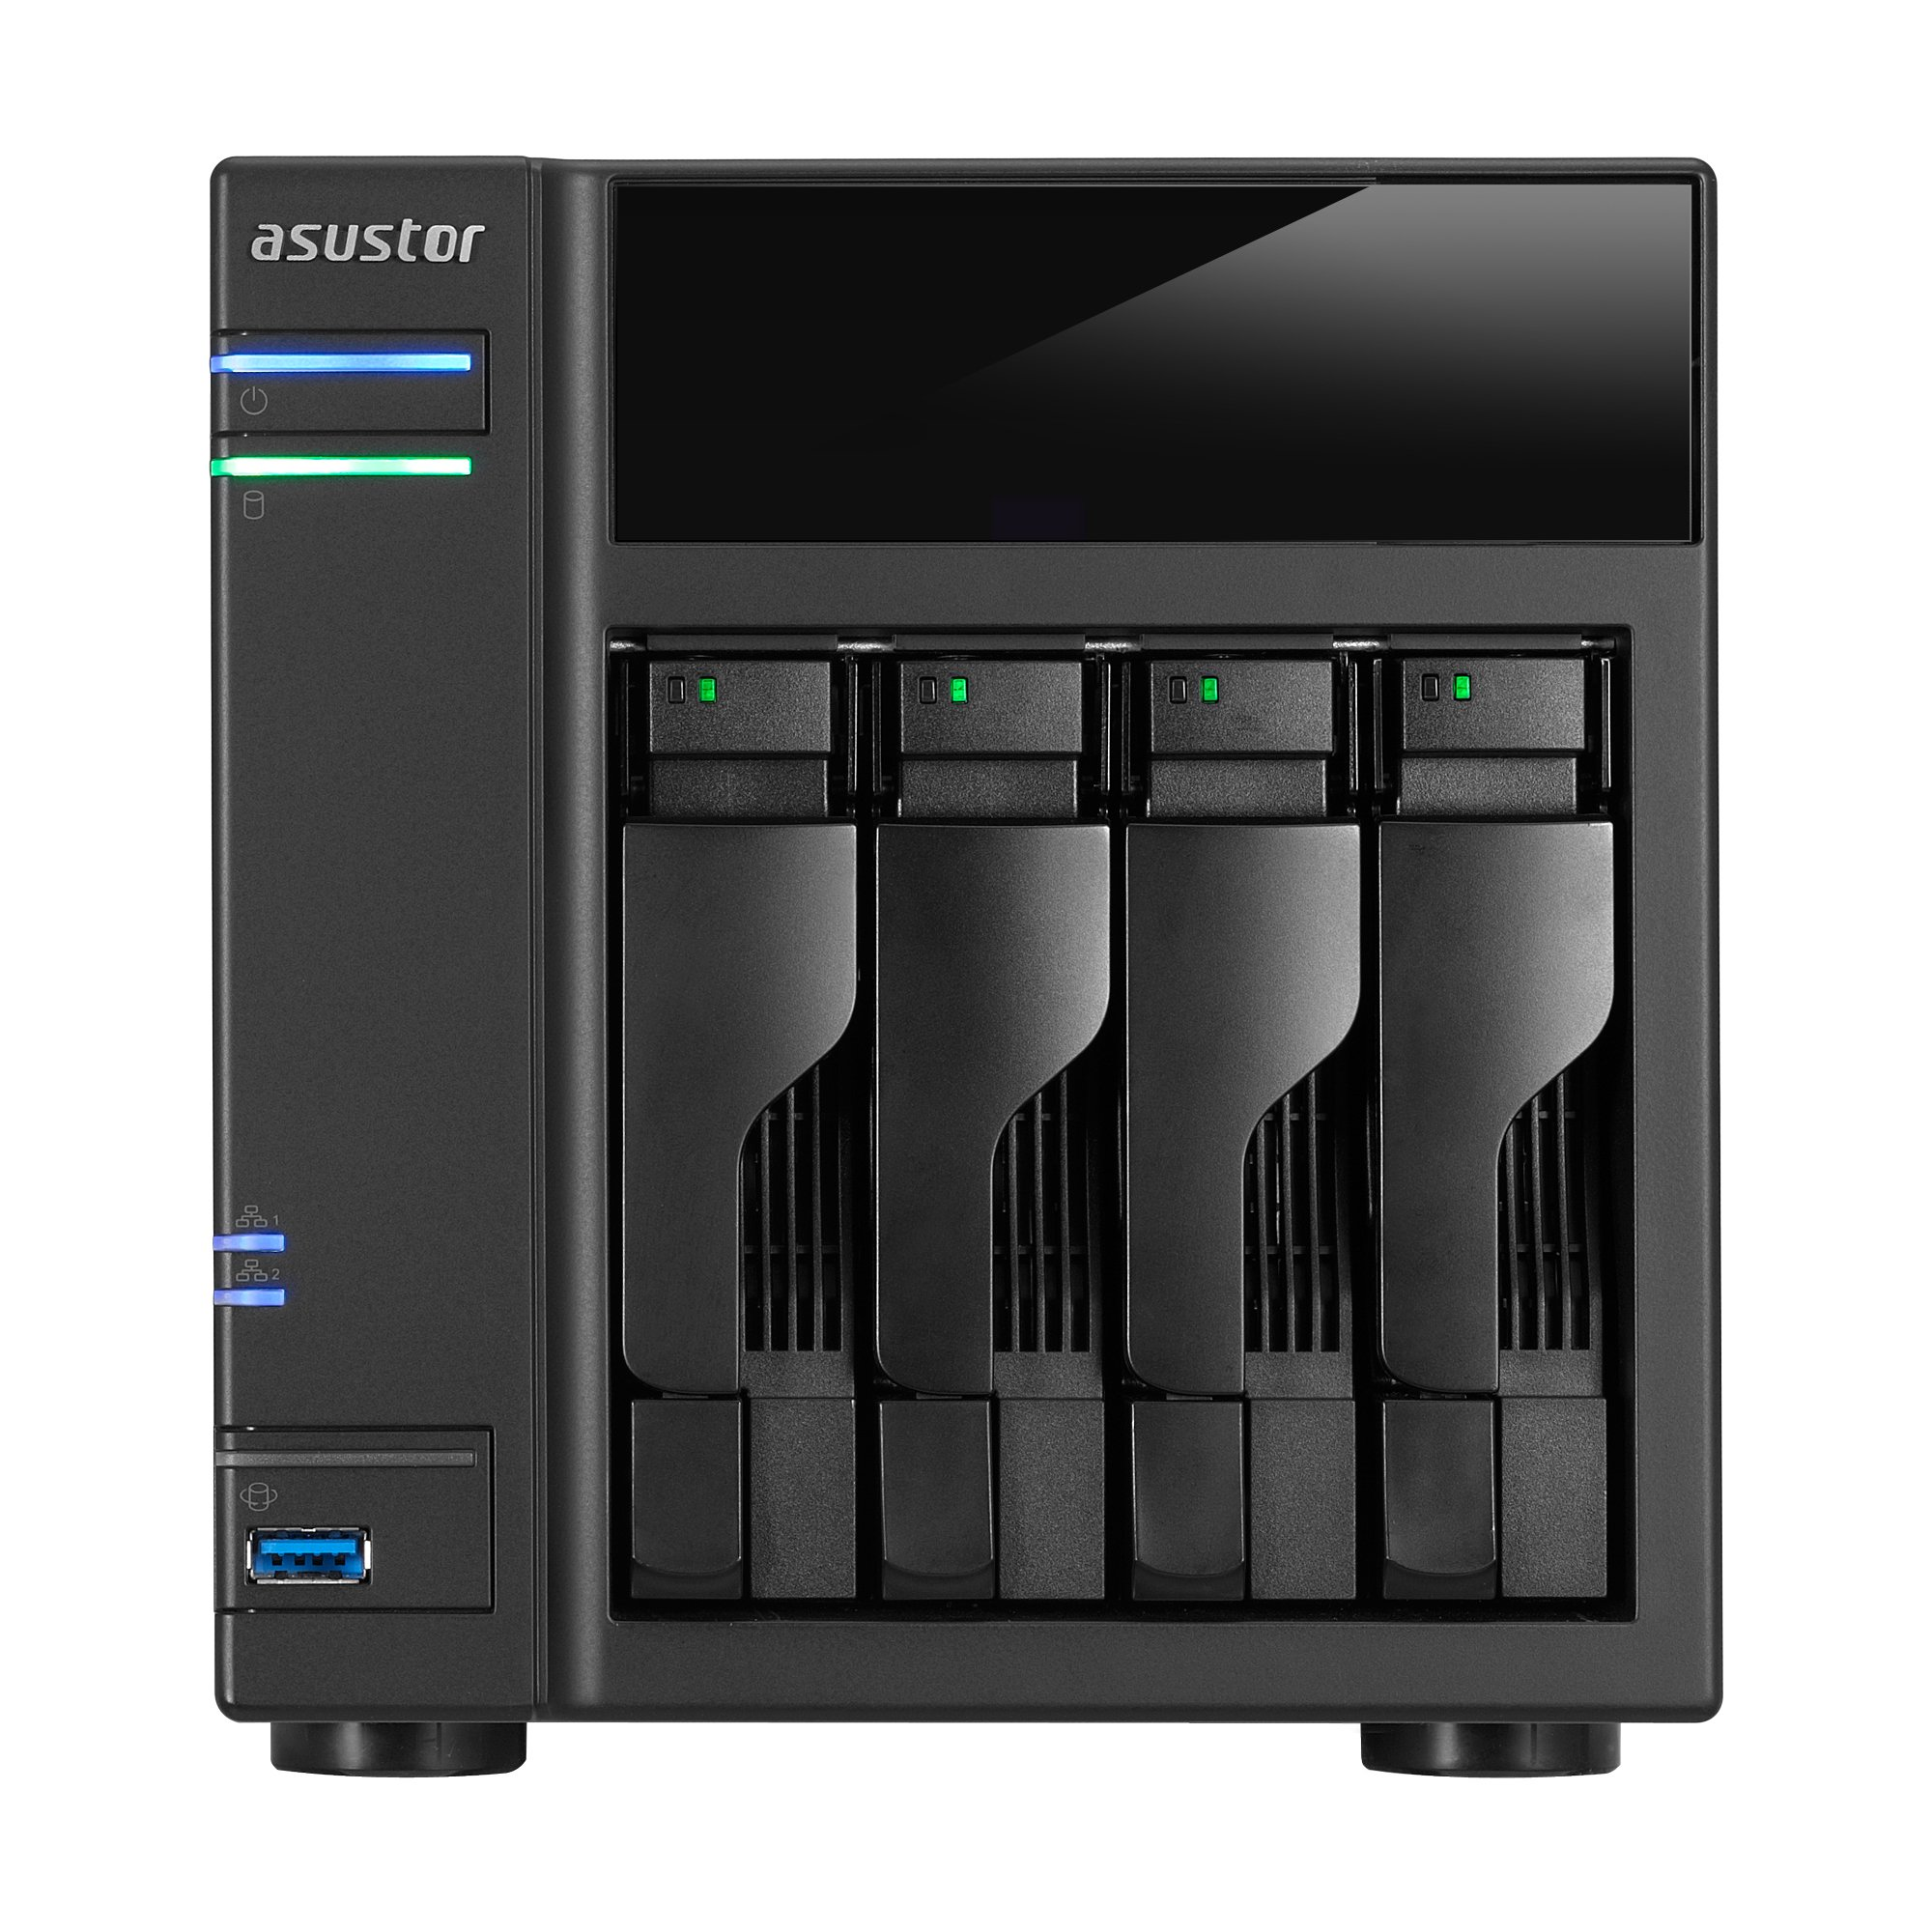 ASUSTOR AS6104T 4-Bay INTEL Dual-Core NAS